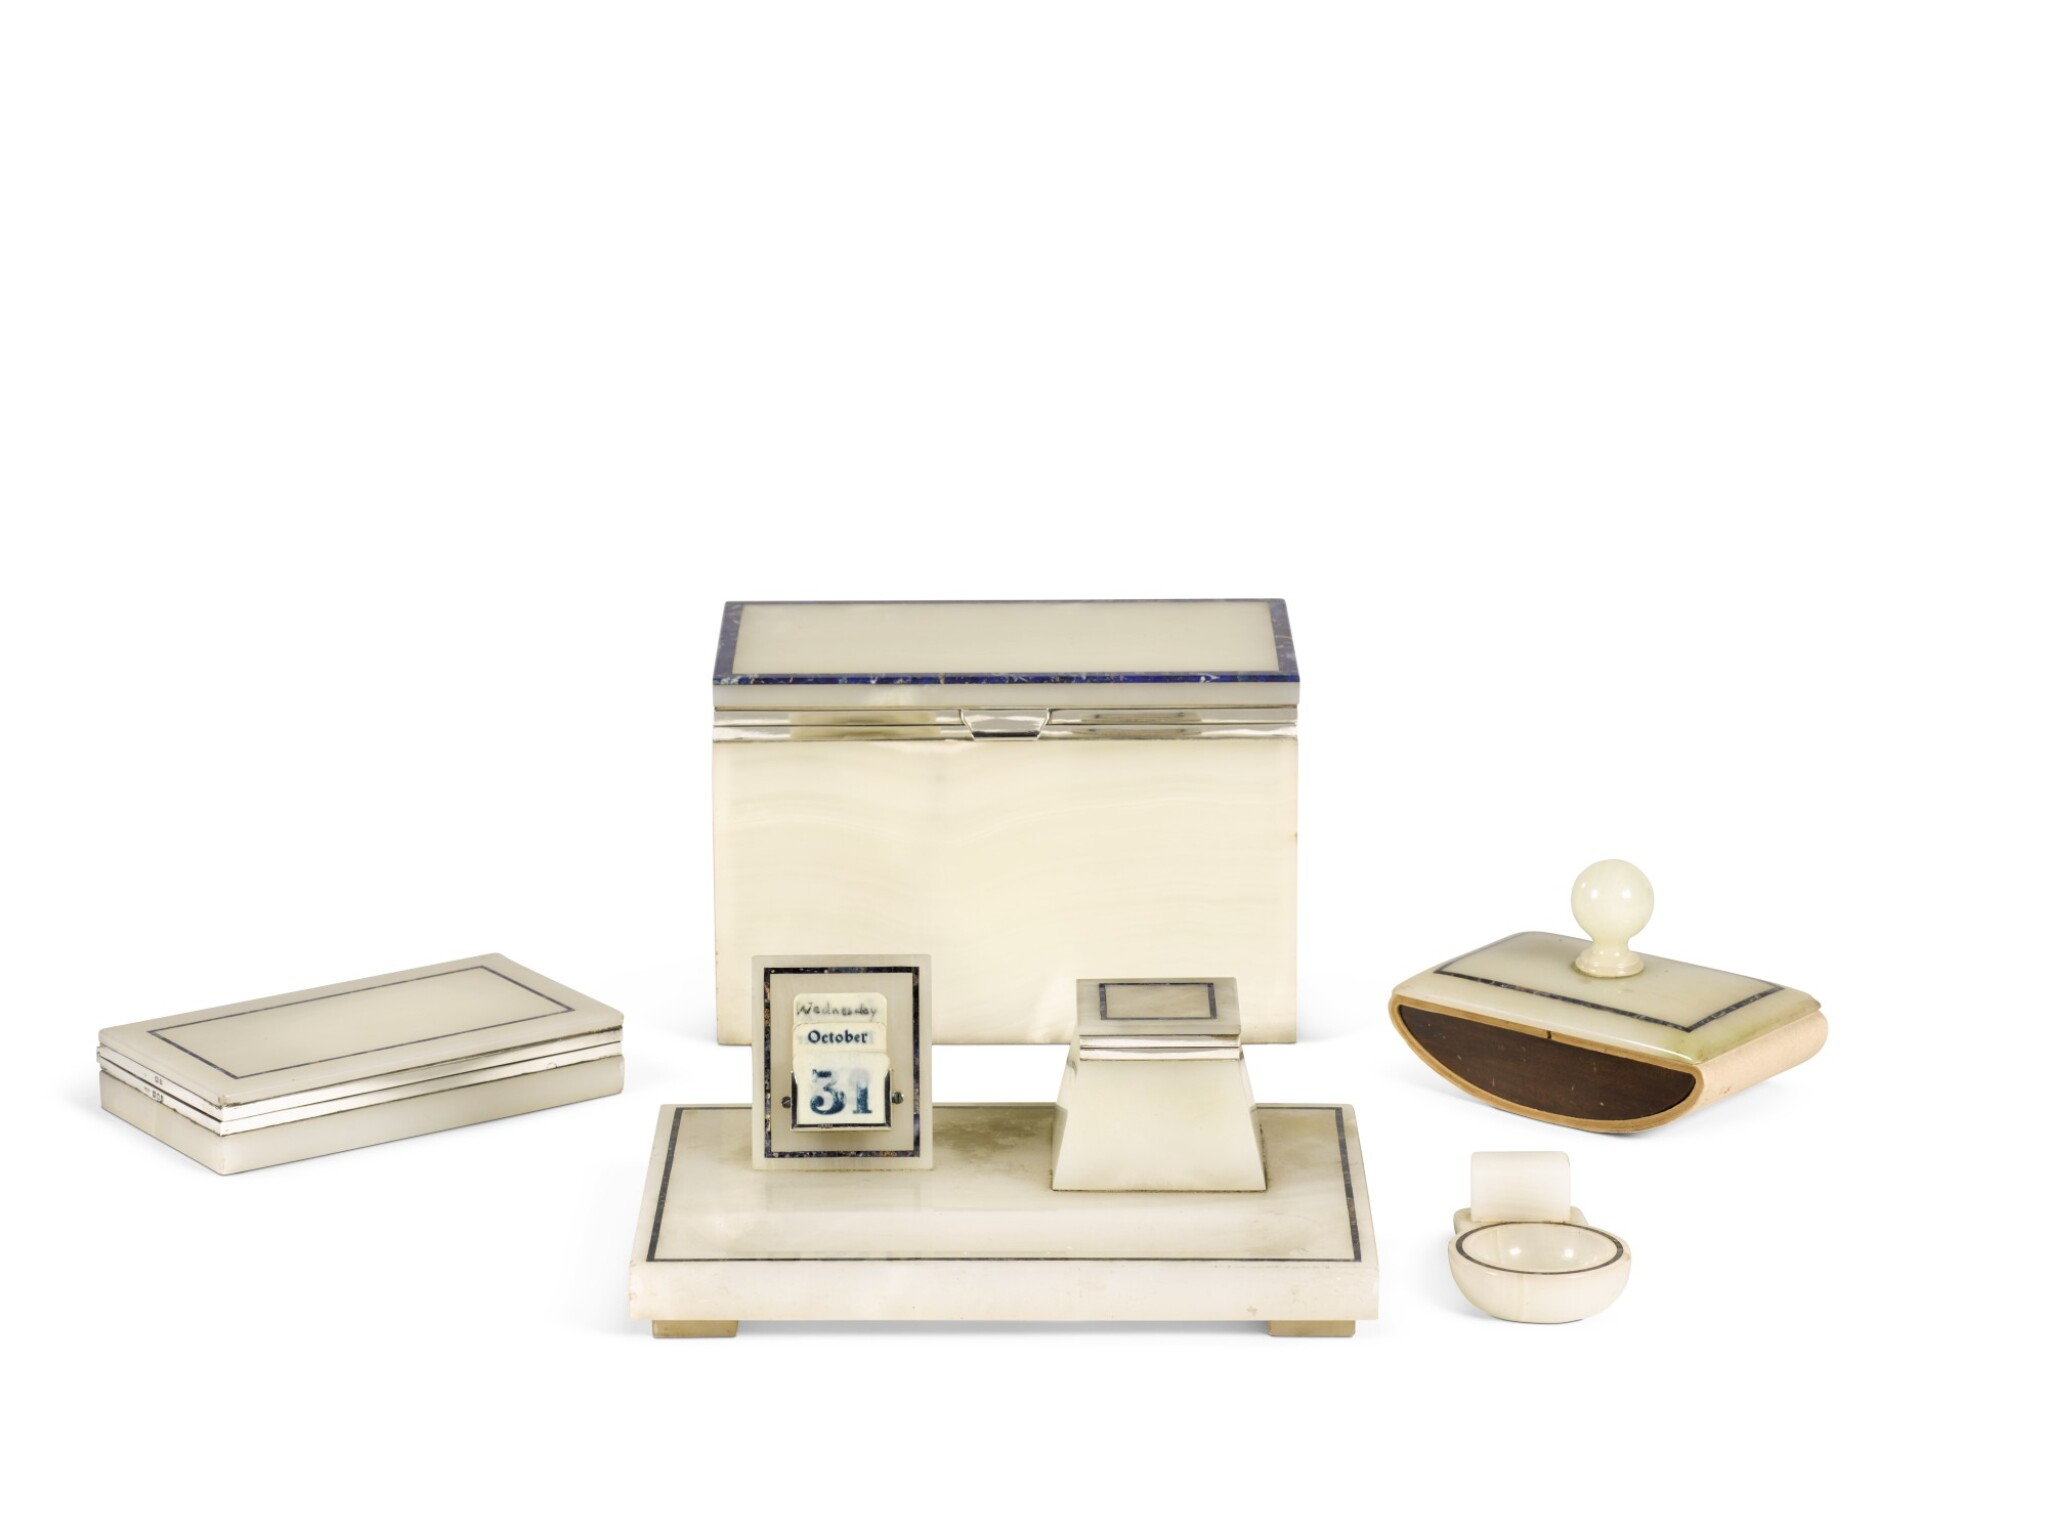 AN ART DECO SILVER-MOUNTED LAPIS LAZULI BANDED ONYX DESK SET BY HENRY GRIFFITH & SONS LTD., LONDON, 1921 AND 1922